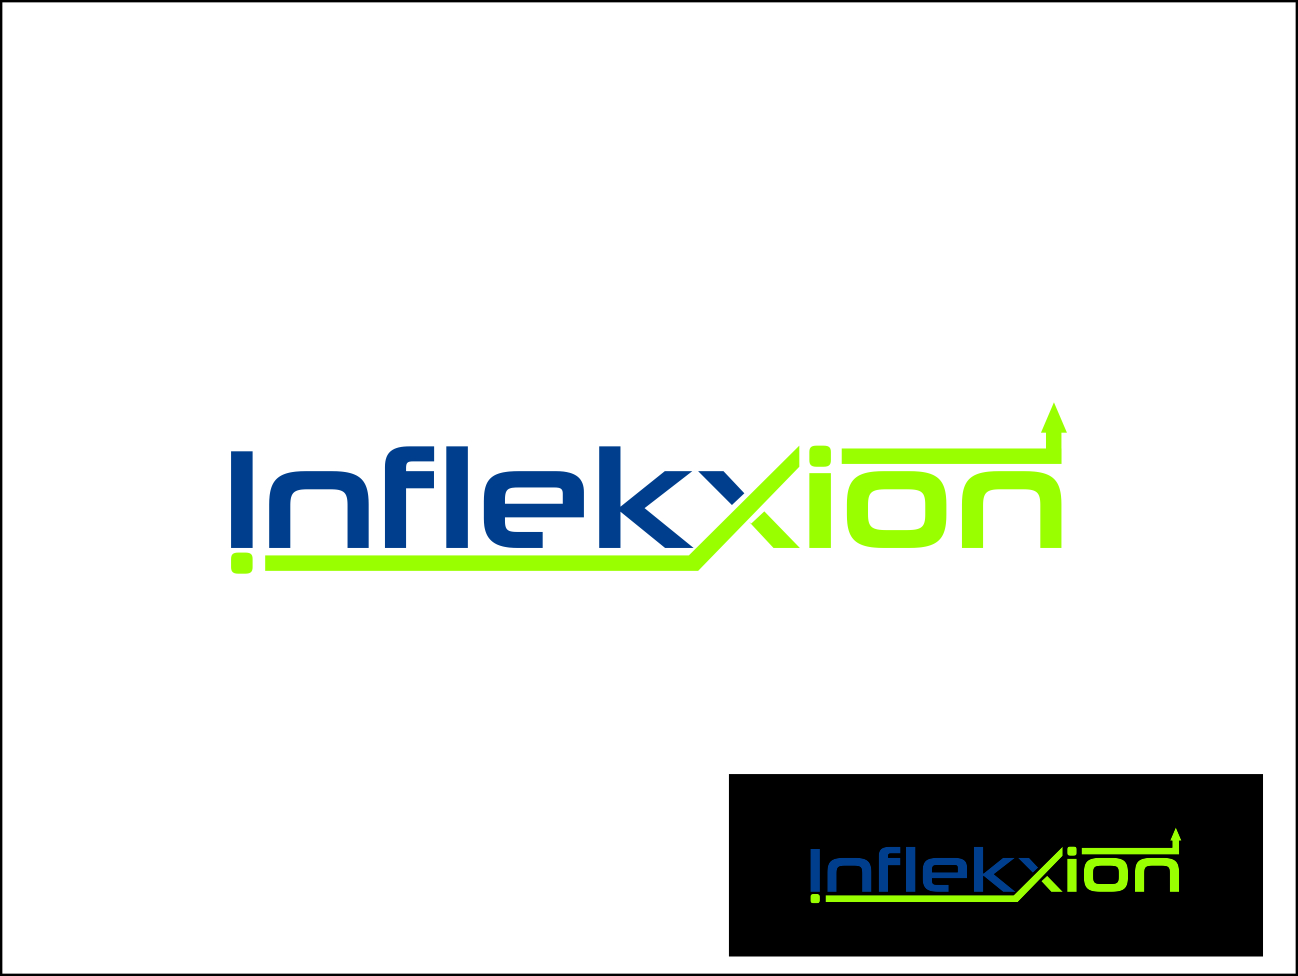 Logo Design by Agus Martoyo - Entry No. 39 in the Logo Design Contest Professional Logo Design for Inflekxion.